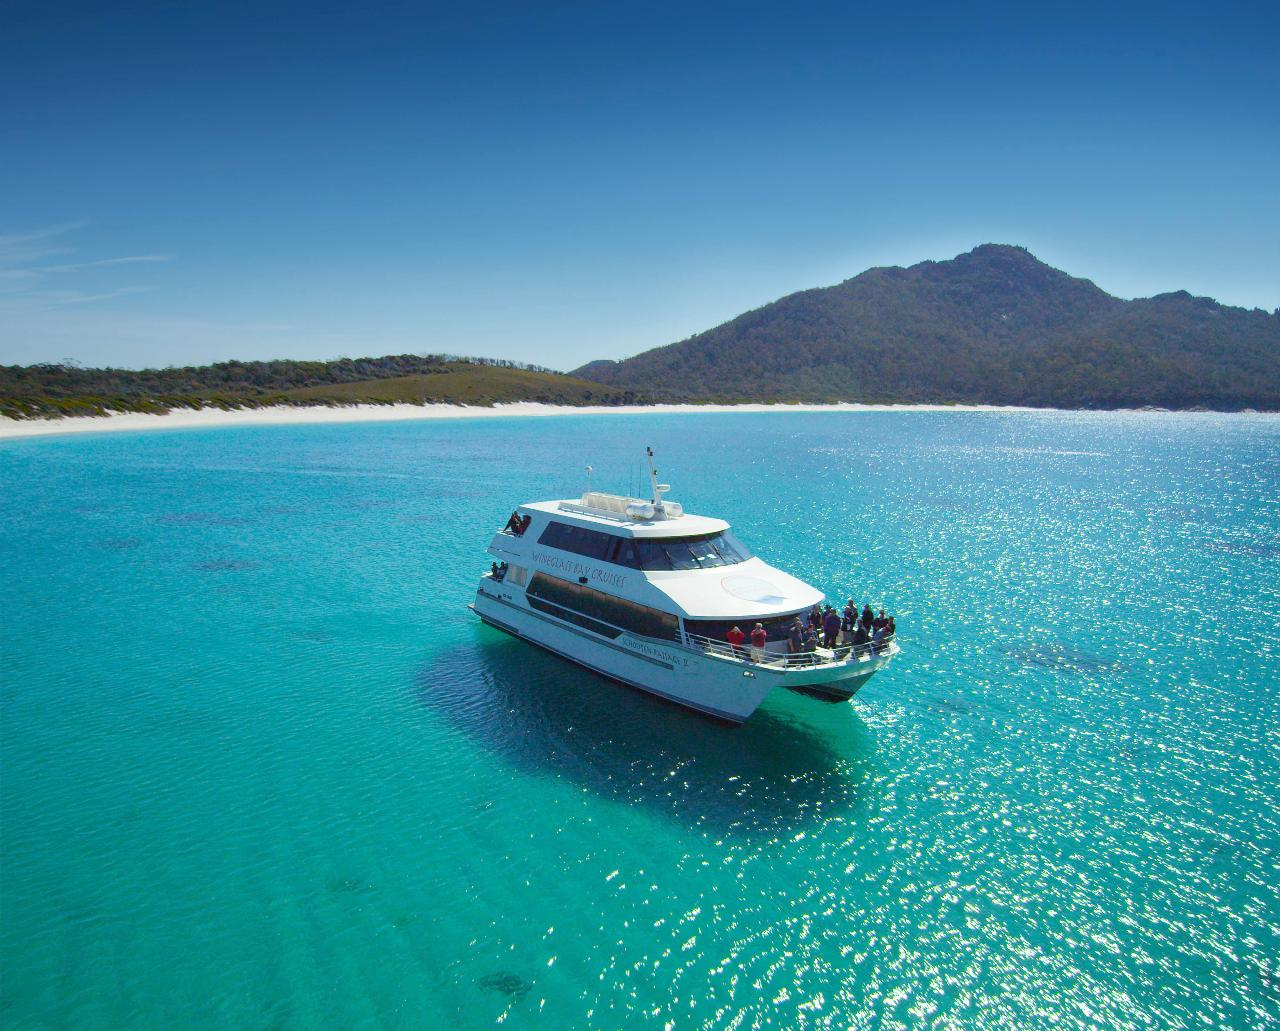 Vista Lounge - Wineglass Bay Cruise (Including Lunch)